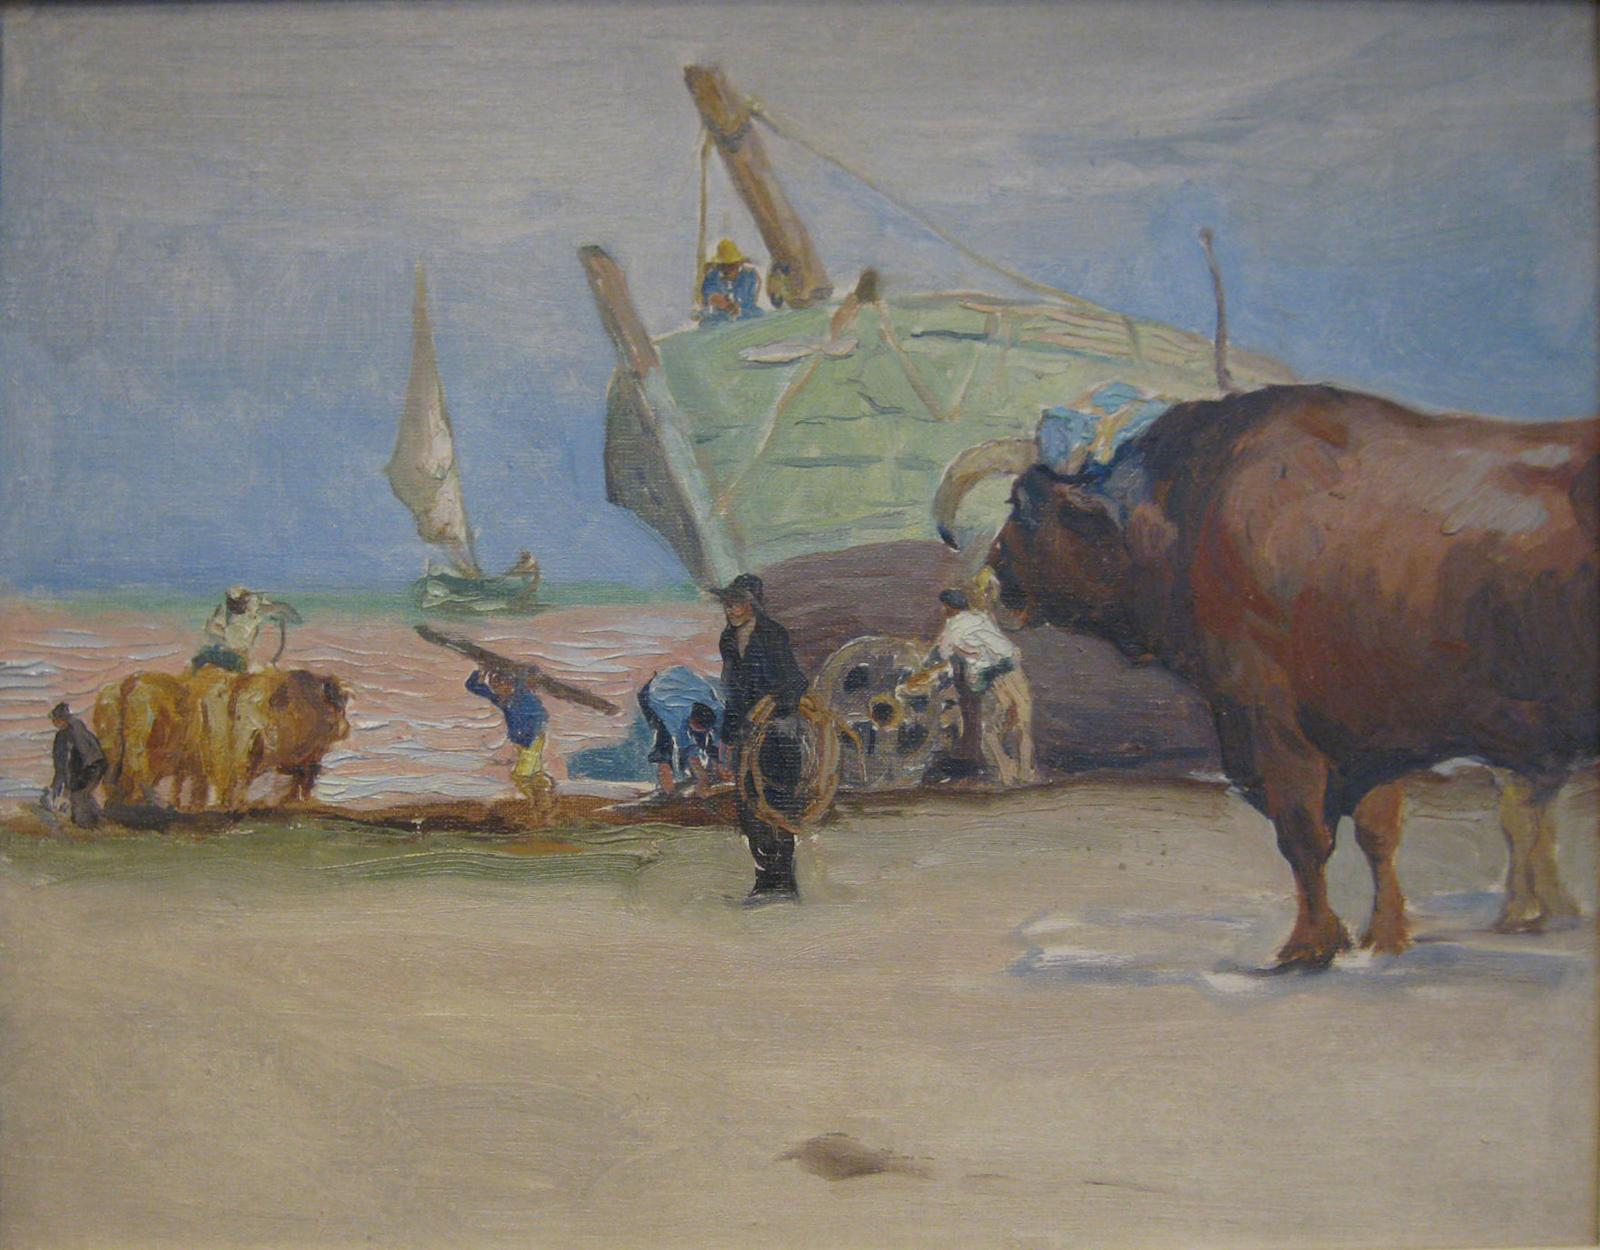 View of a boat on the beach surrounded by men and oxen, blue sky, and sail boat in the background.